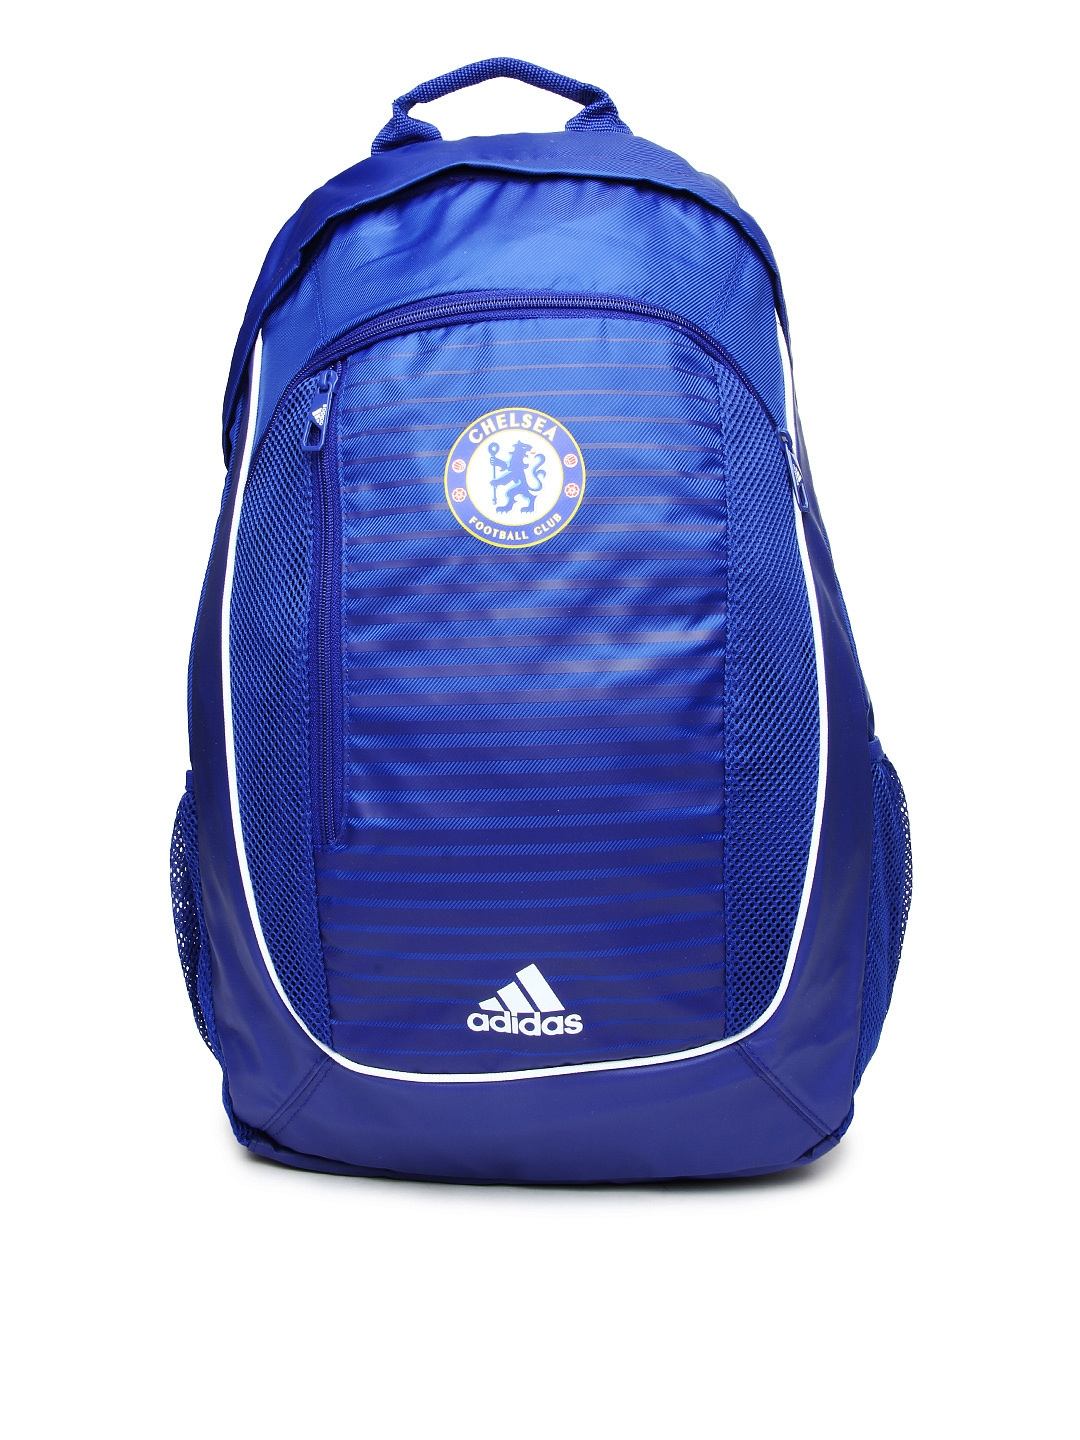 adidas chelsea backpack